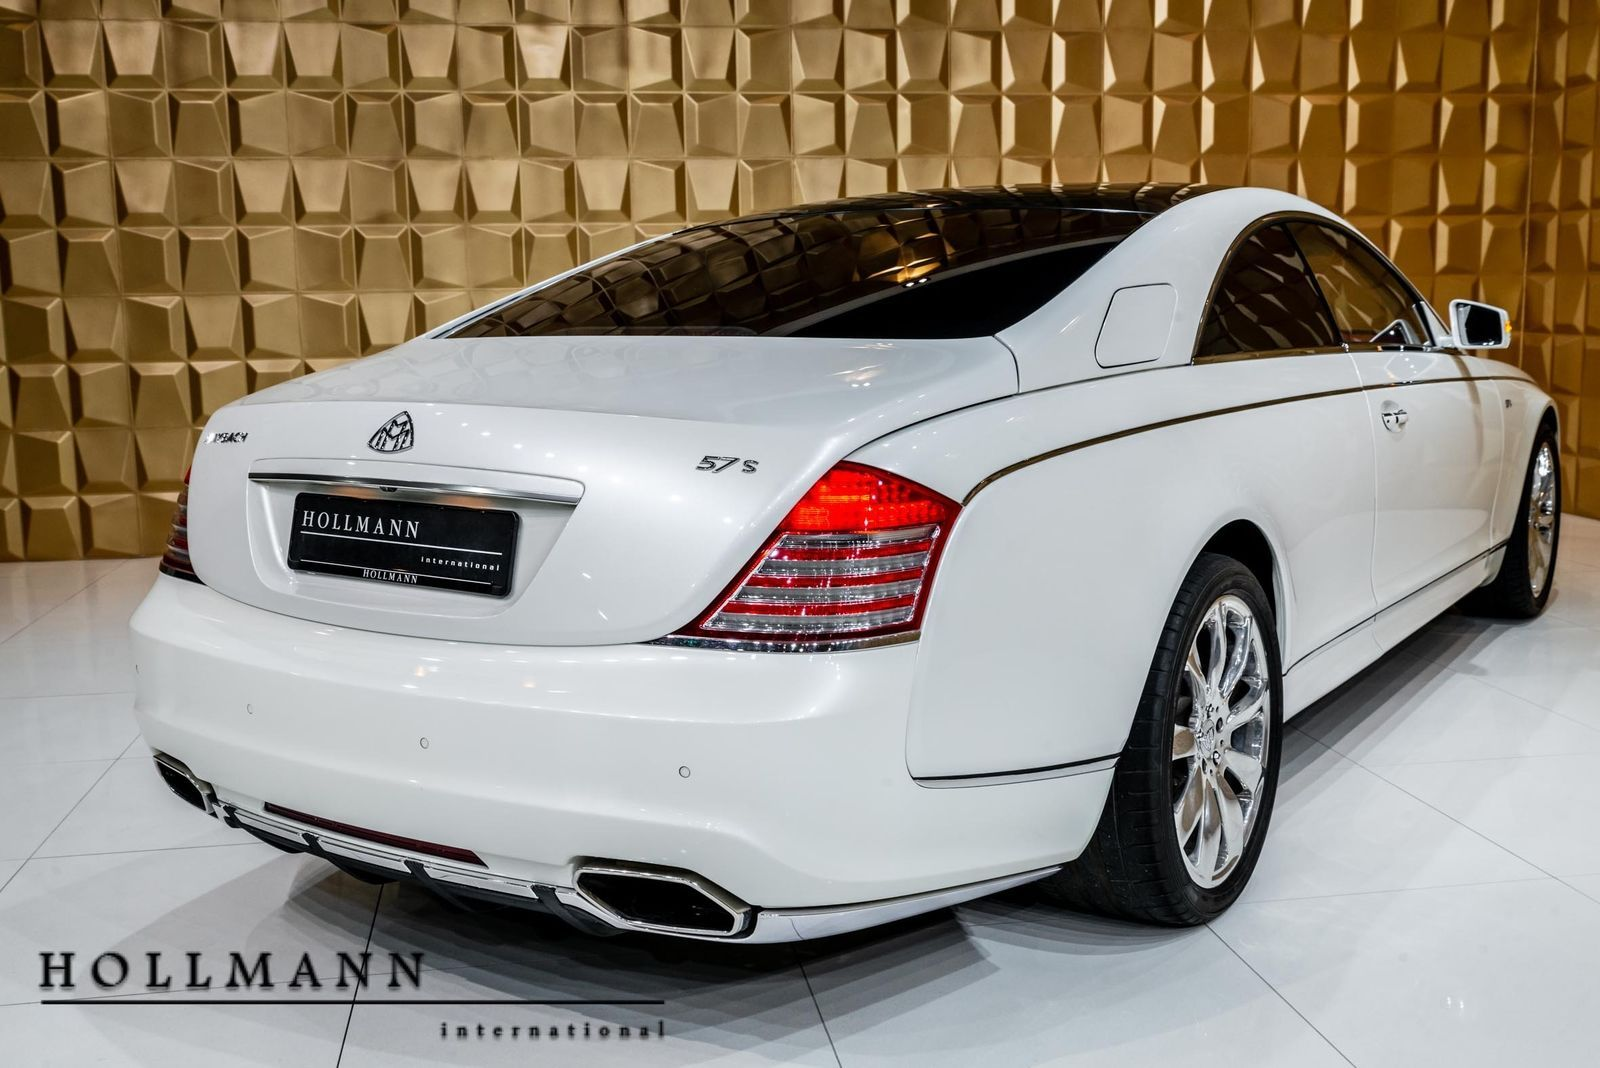 Maybach 57s Xenatec Coupe Luxury Pulse Cars Germany For Sale On Luxurypulse In 2021 Maybach Maybach Coupe Coupe